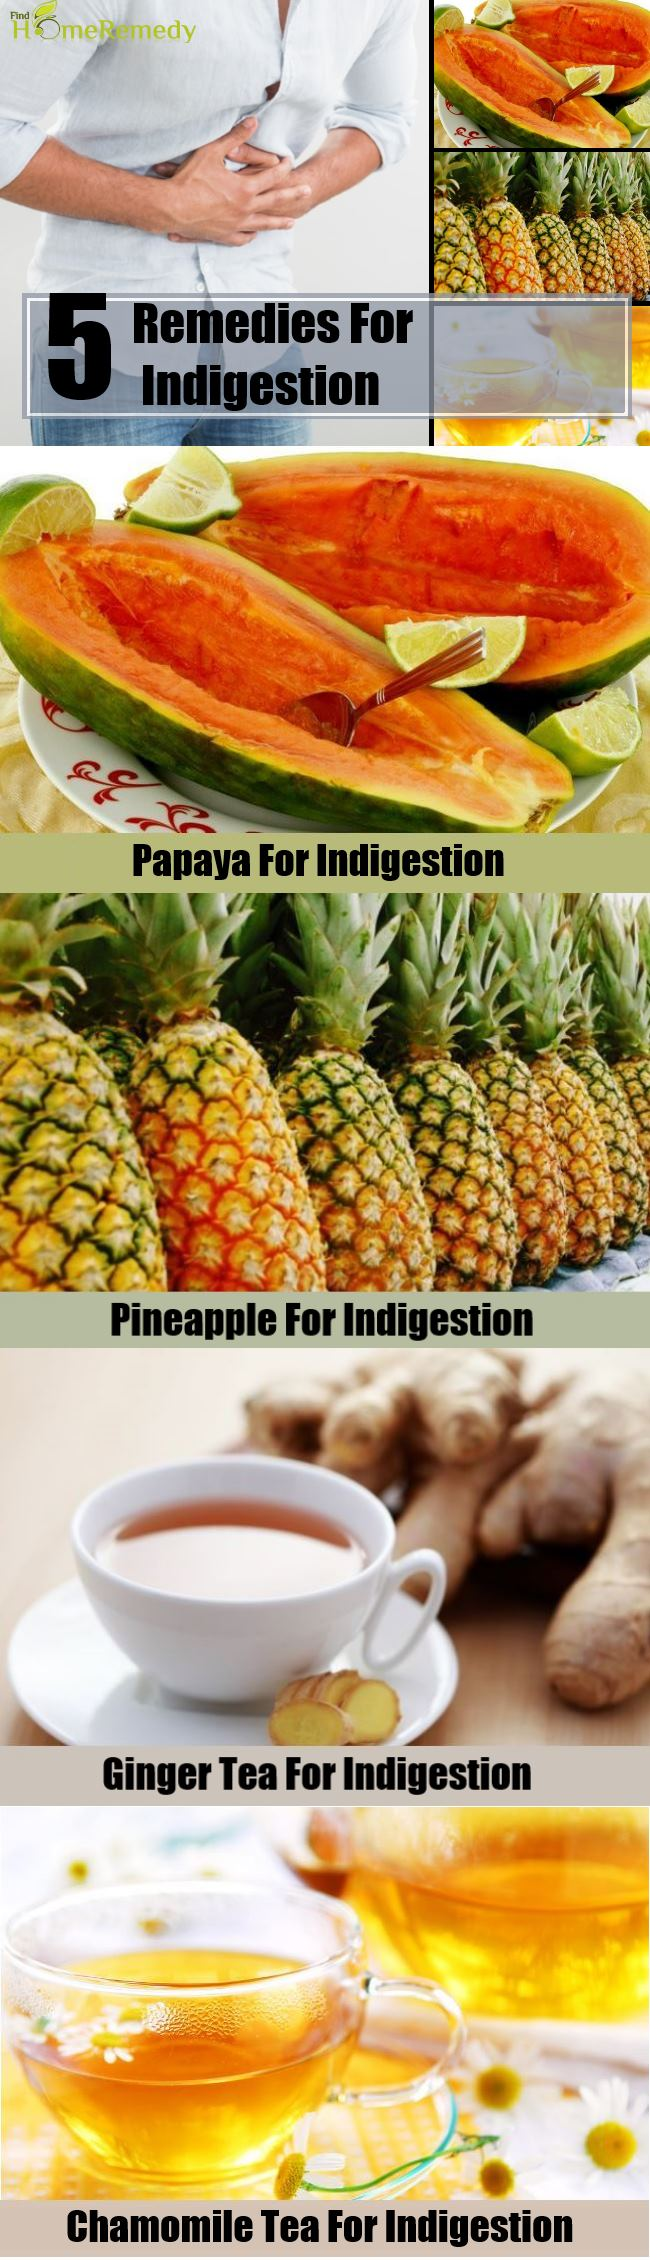 5 Remedies For Indigestion